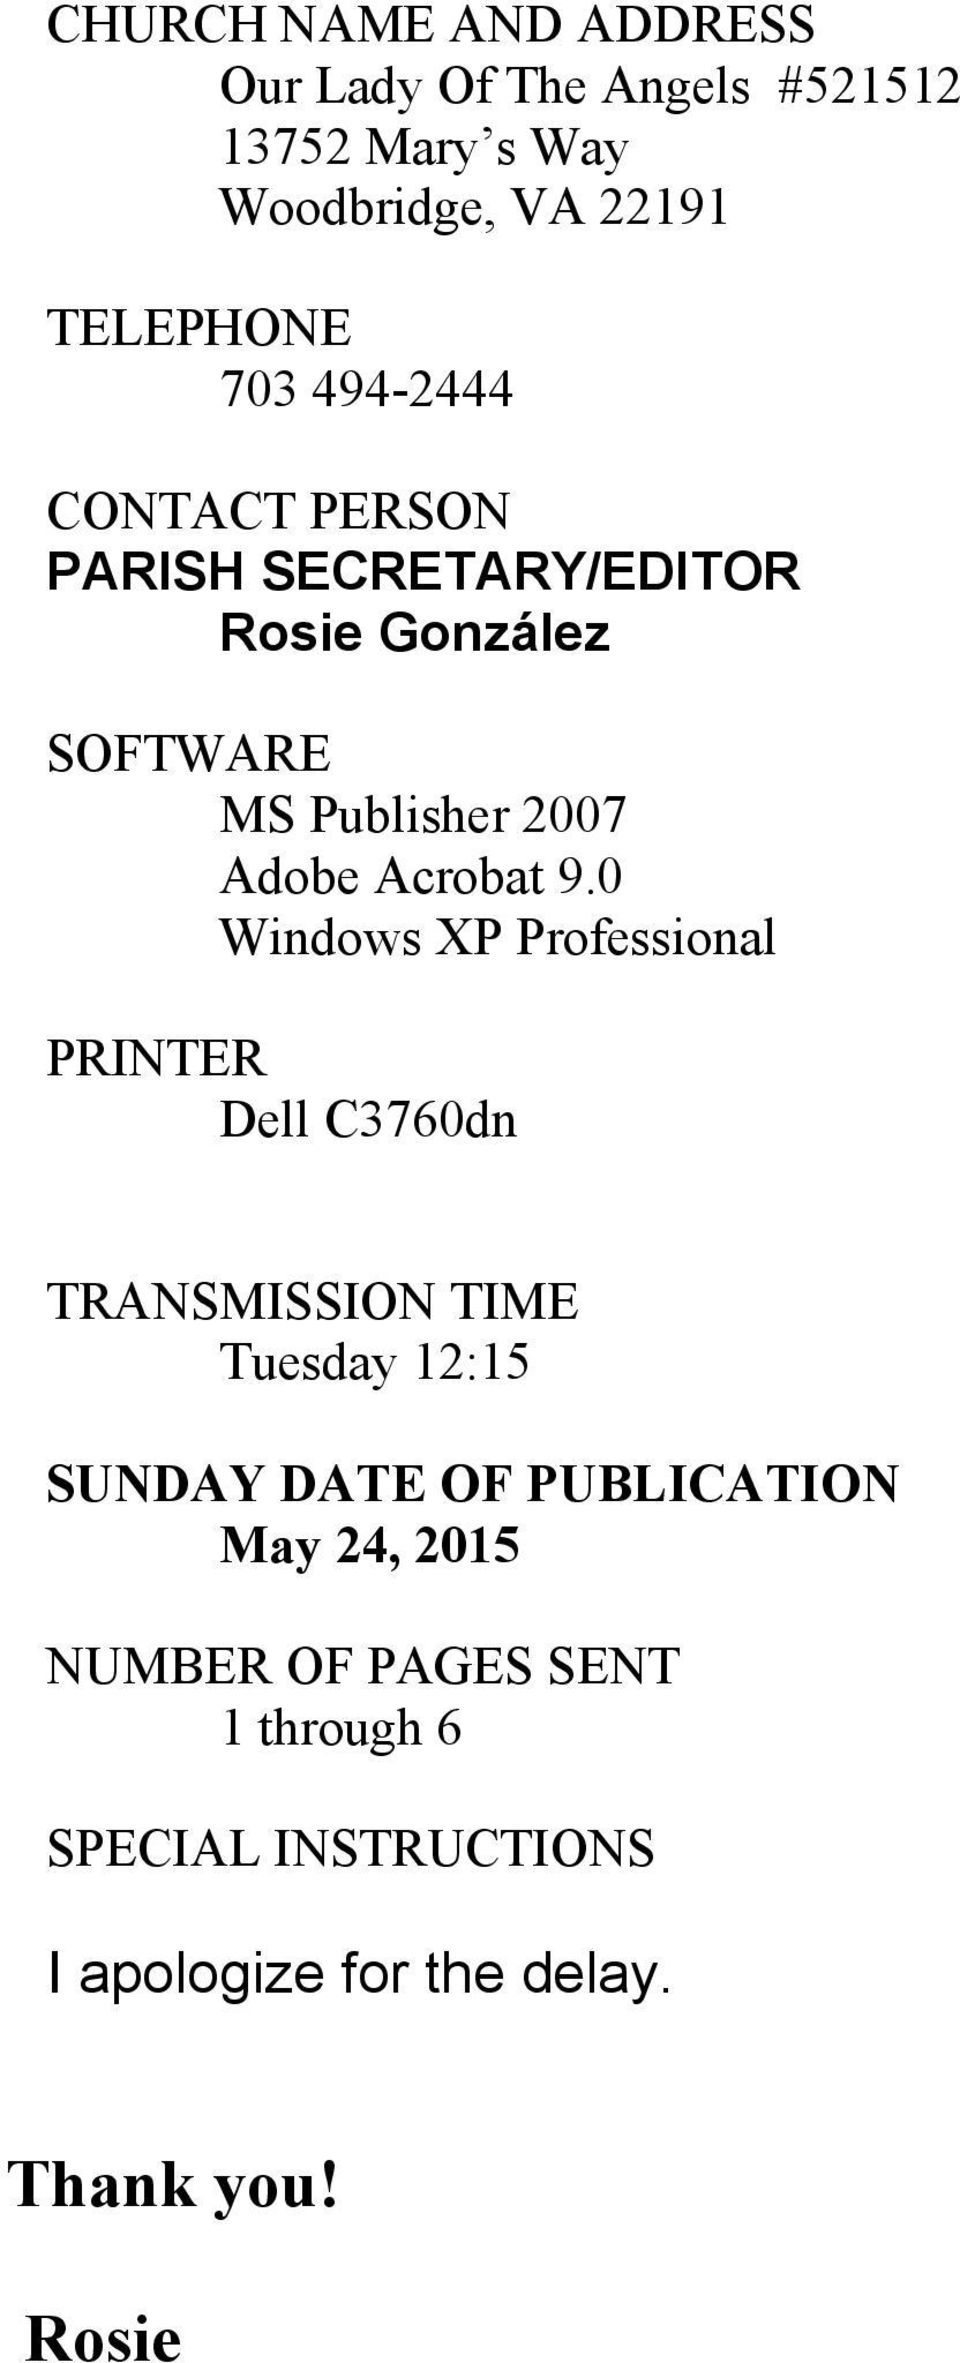 0 Windows XP Professional PRINTER Dell C3760dn TRANSMISSION TIME Tuesday 12:15 SUNDAY DATE OF PUBLICATION